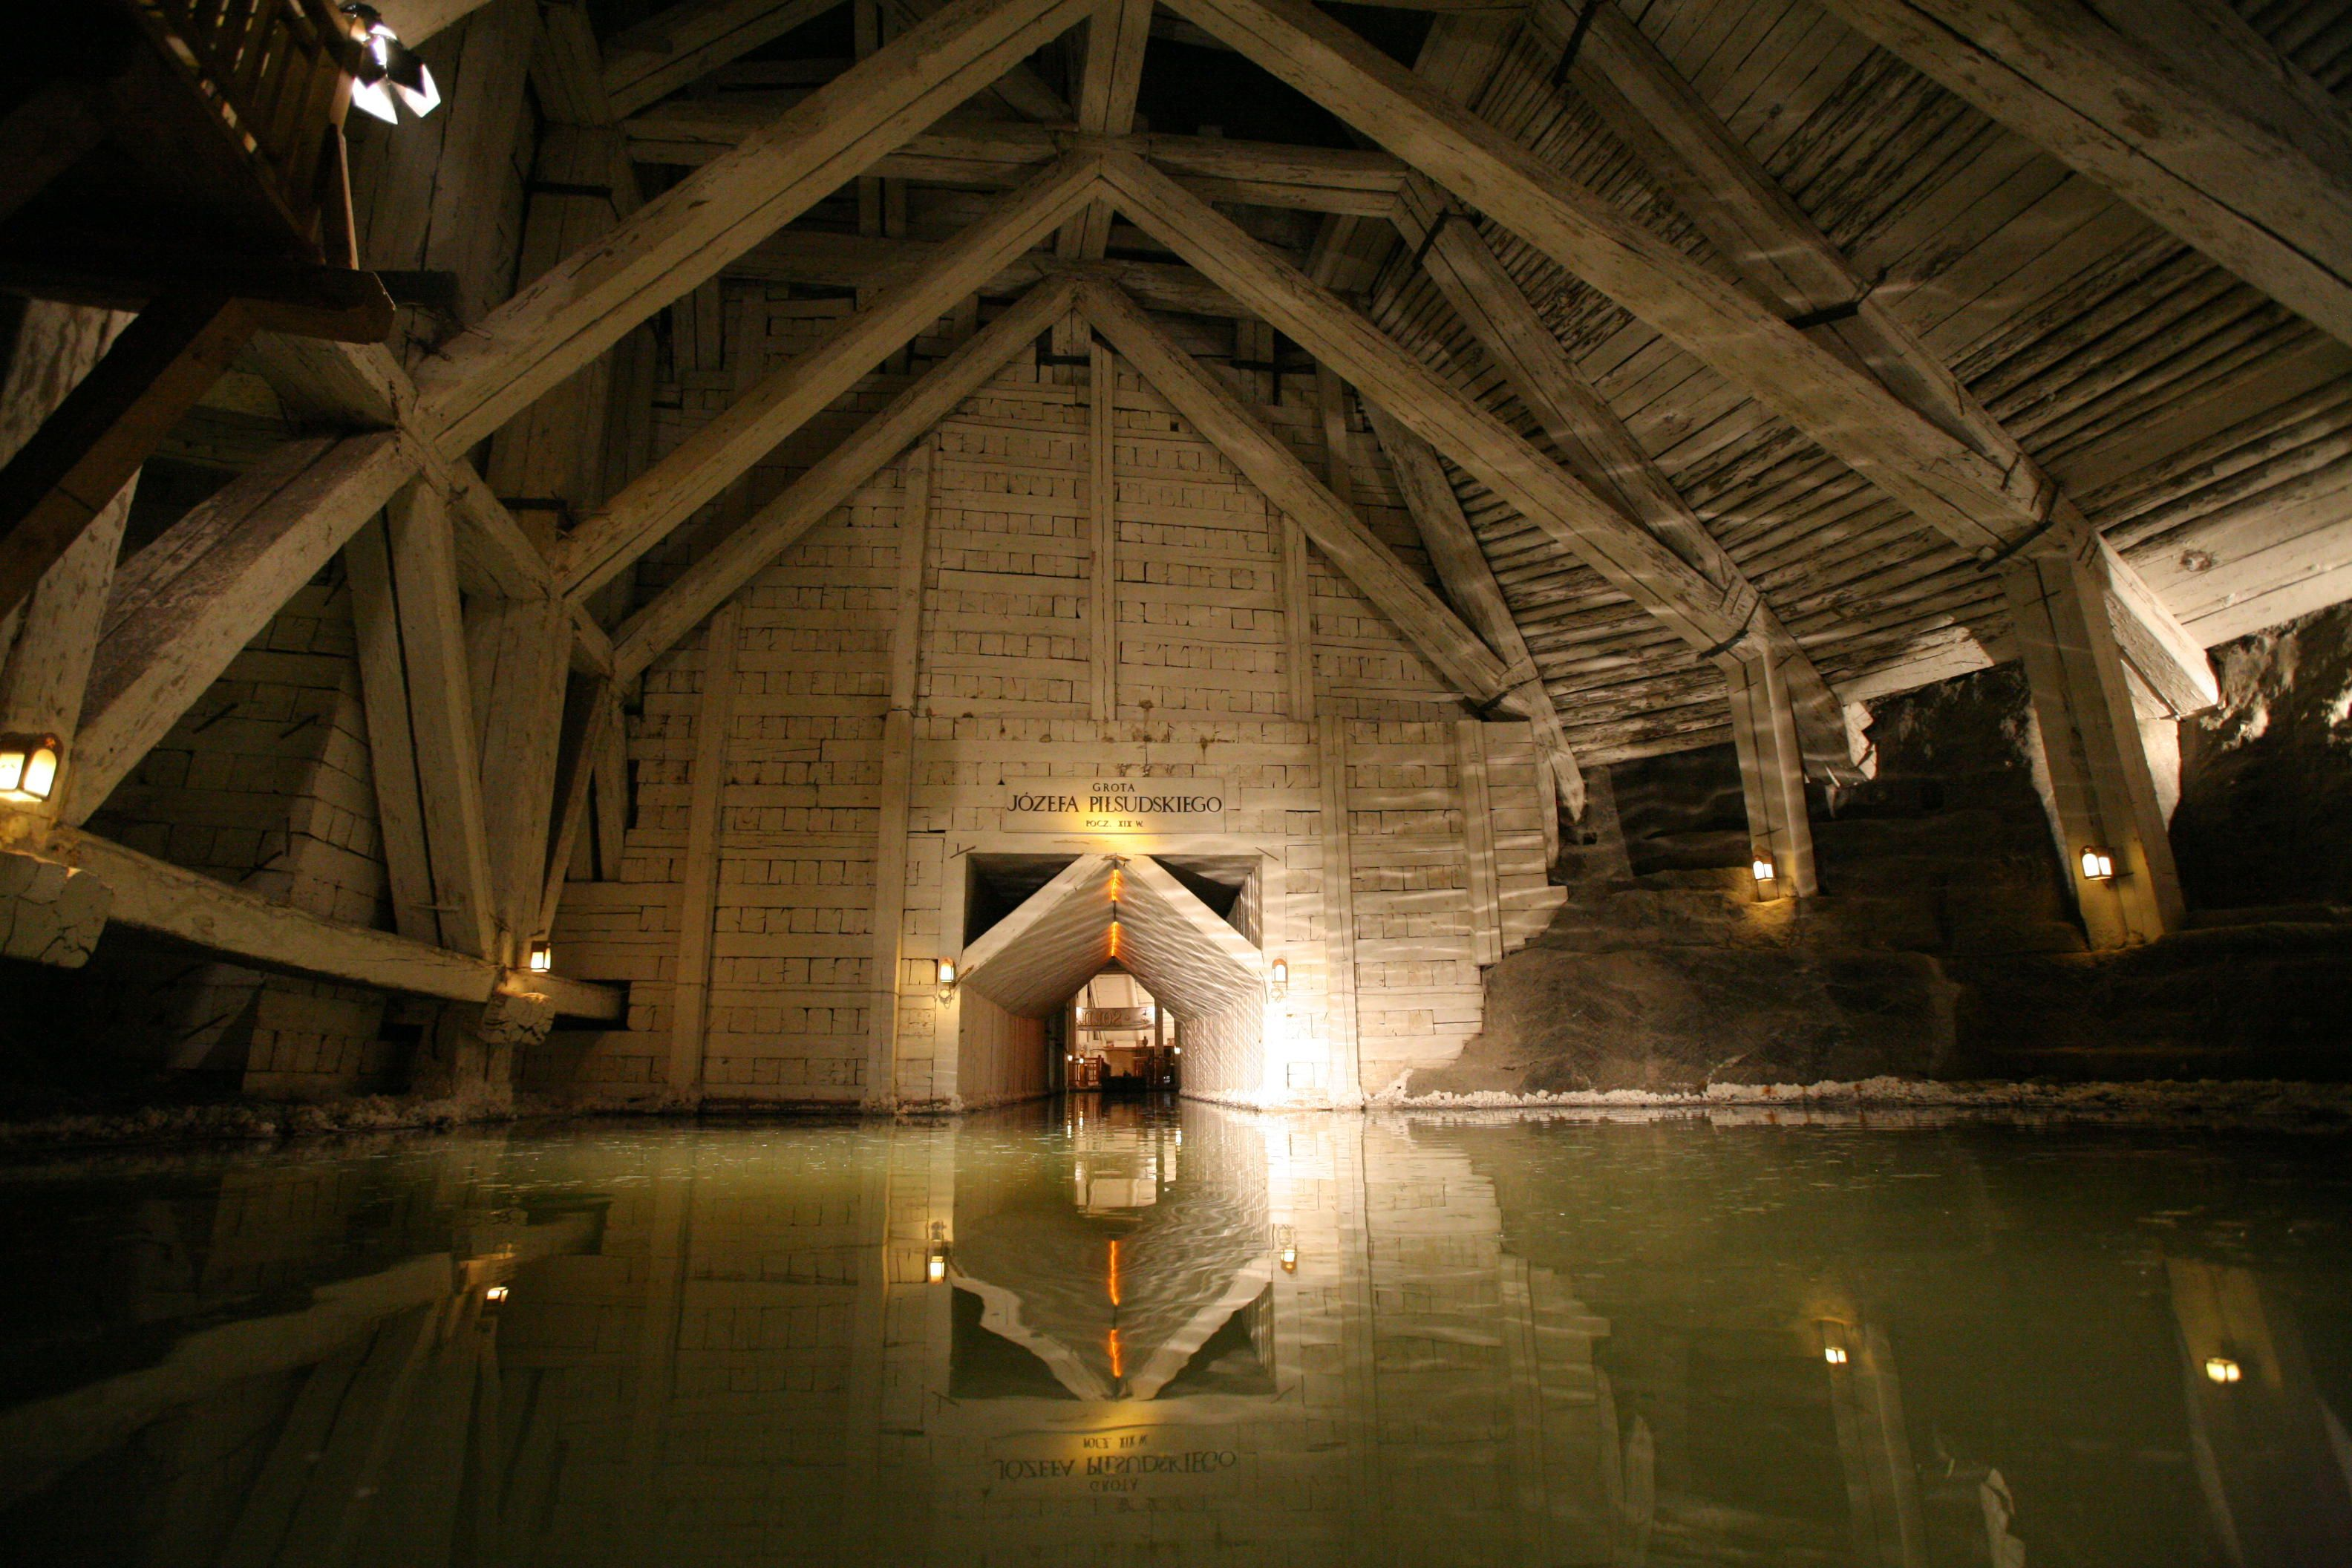 Why should we go to the Wieliczka Salt Mine?